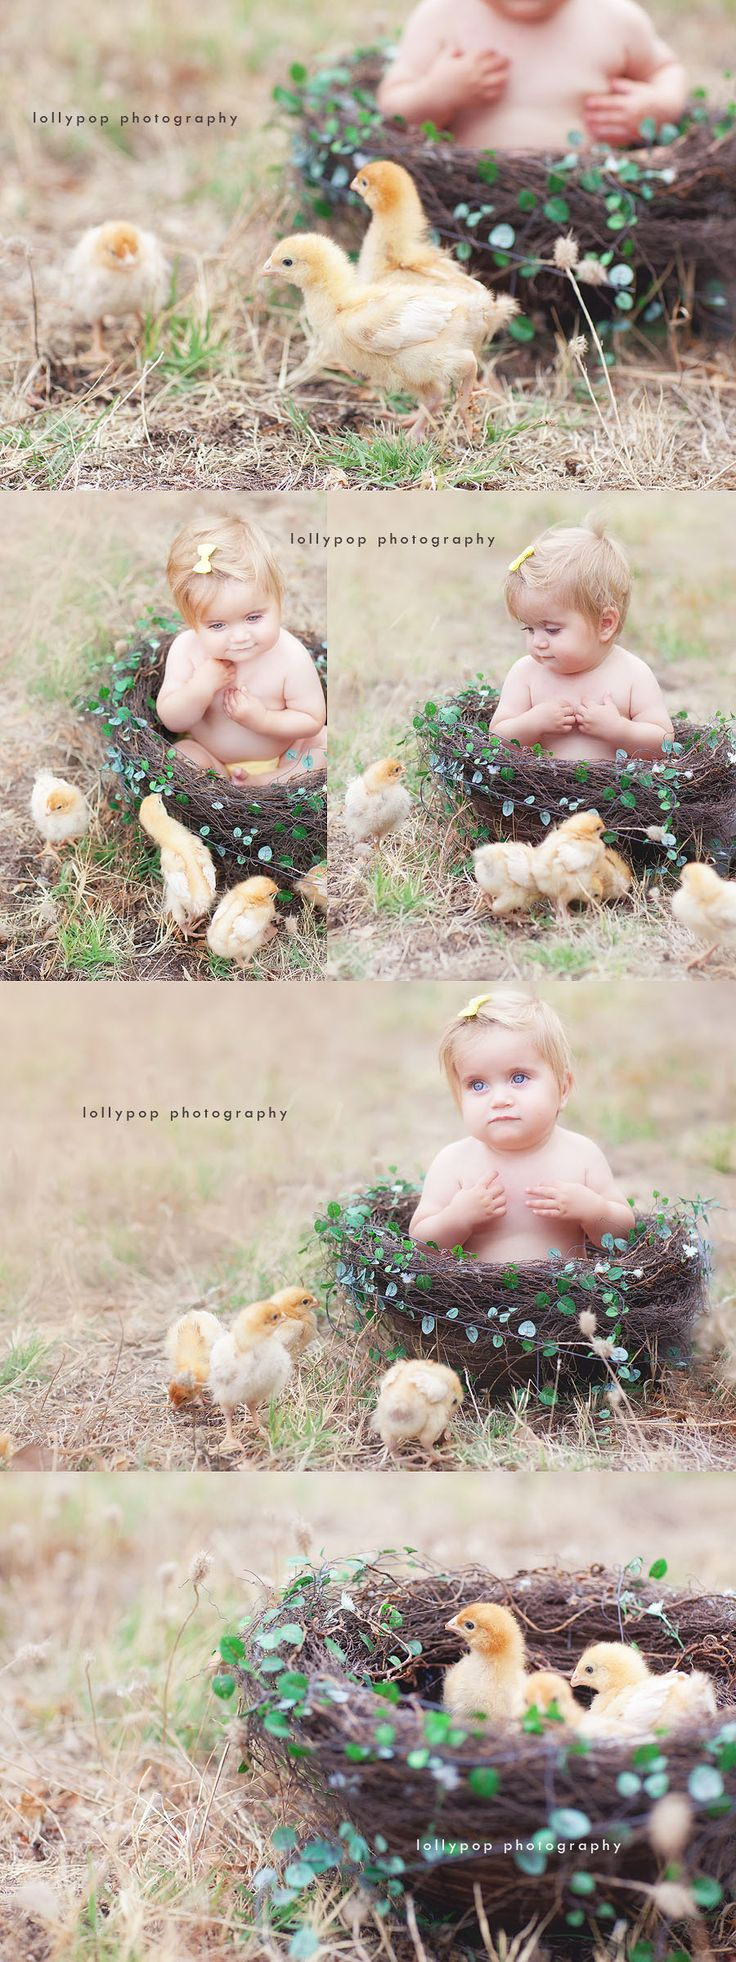 Easter chickens photo shoot. ♡ Photo Session Ideas | Props | Prop | Child Photography  Pose Idea | Poses | Family | Farm | Spring Mini Session | Animals | Pet | Baby